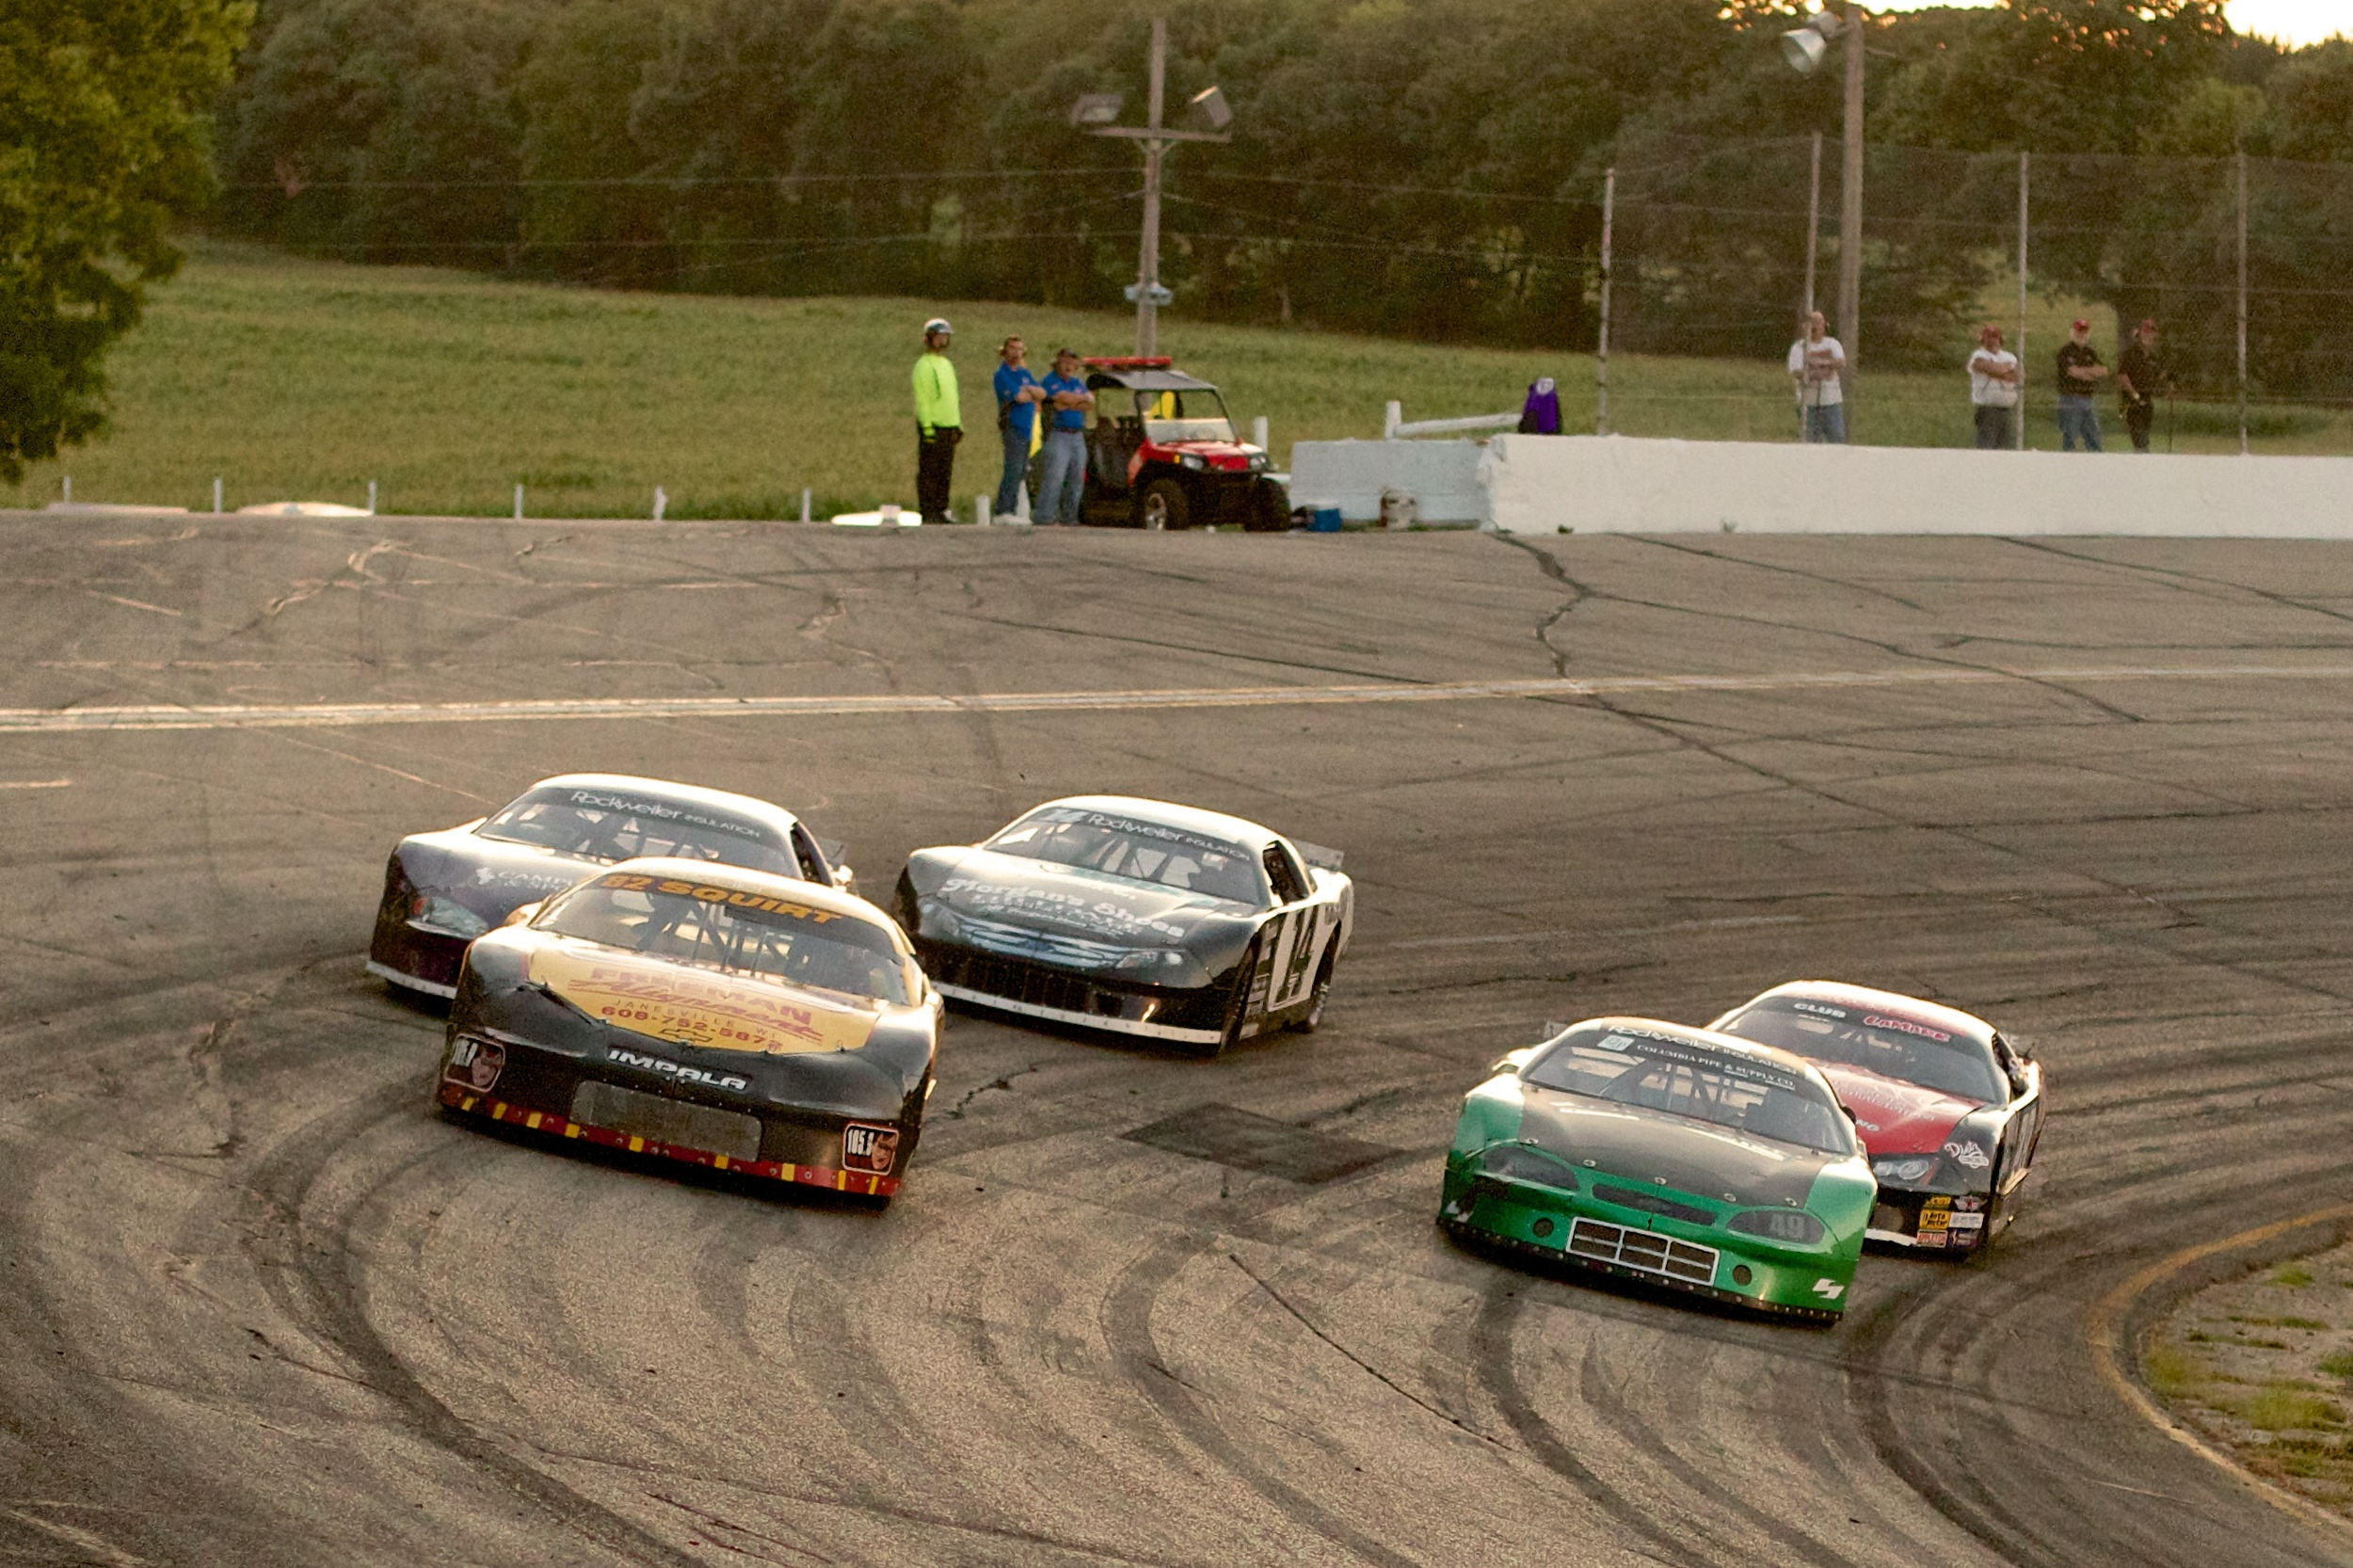 Limited Late Model Racing returns to Wisconsin's Fastest 1/2 Mile Raceway in 2014.